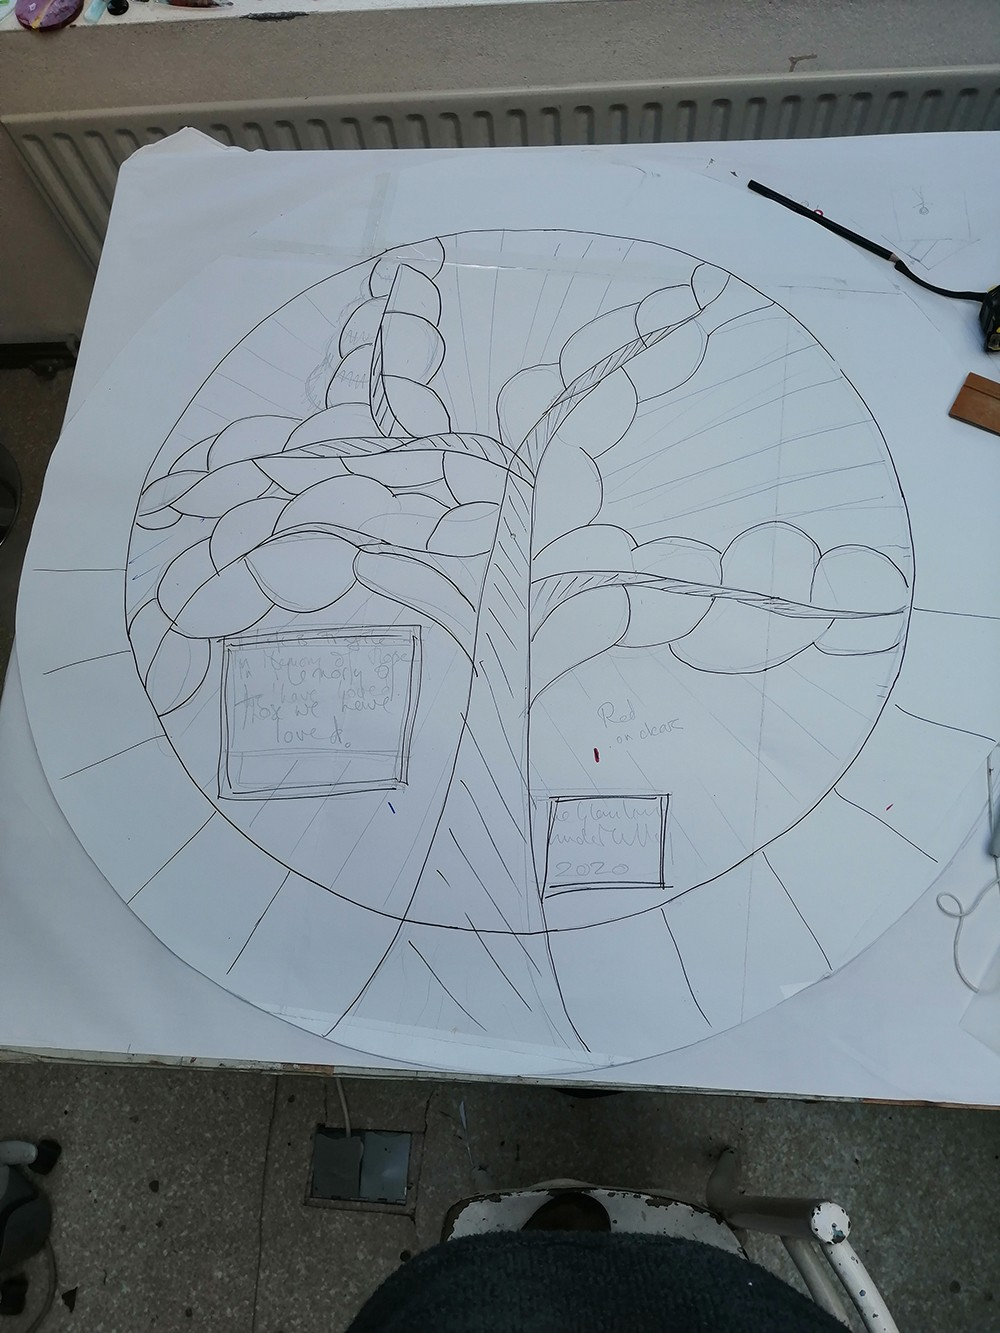 Ballyhaunis_Commission_Stained_Glass_Design_becoming_clearer_at_The_Glasshouse